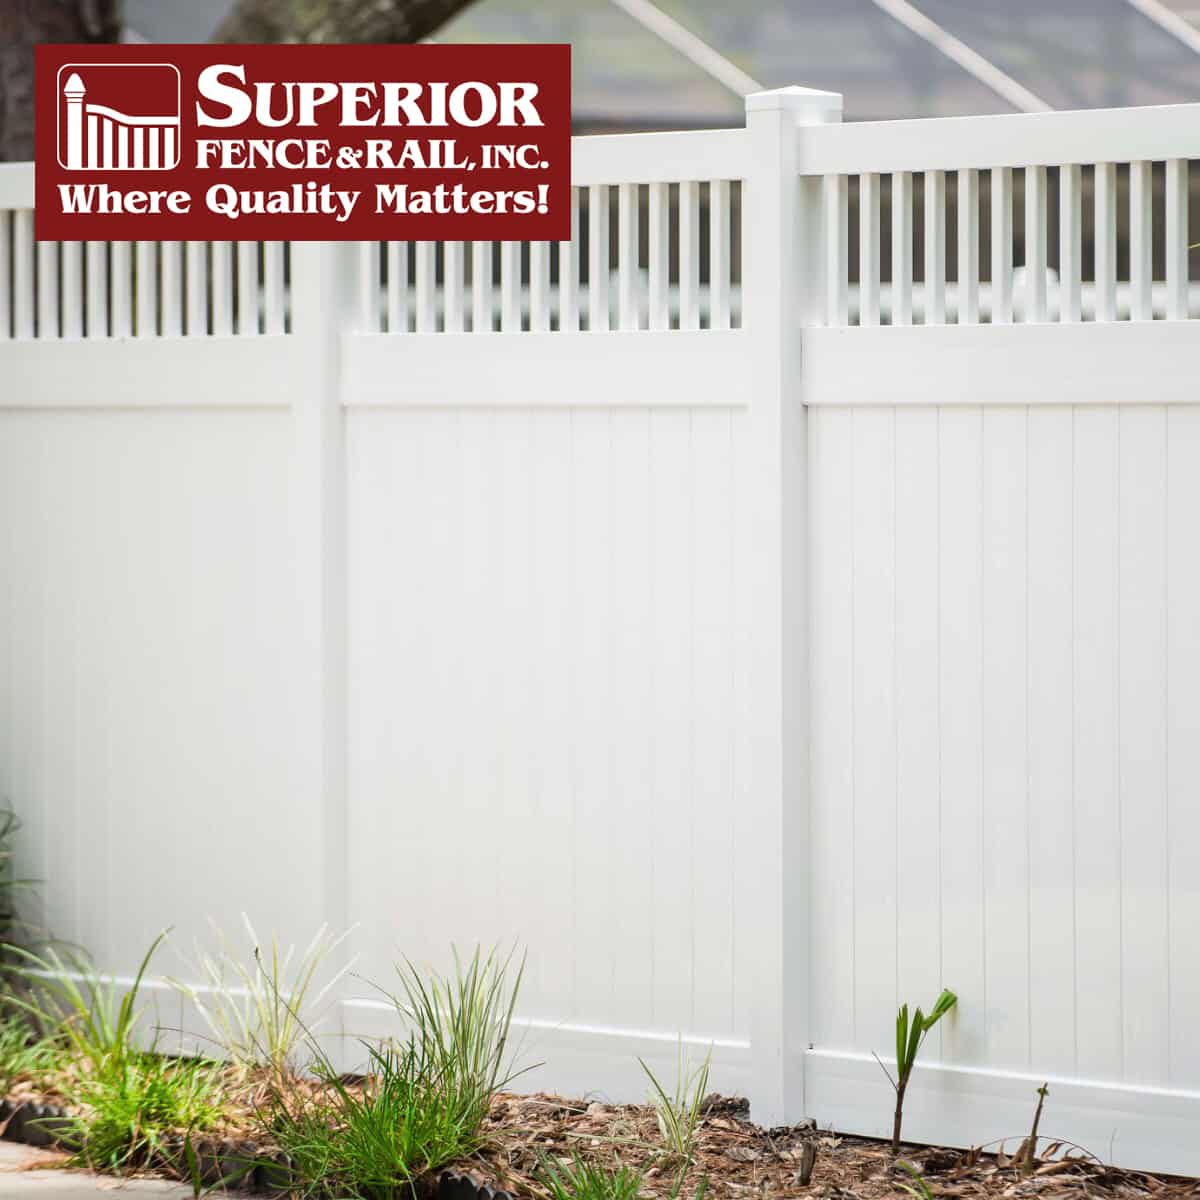 https://www.superiorfenceandrail.com/wp-content/uploads/2020/11/Palatka-Fence-Company-Contractor.jpg